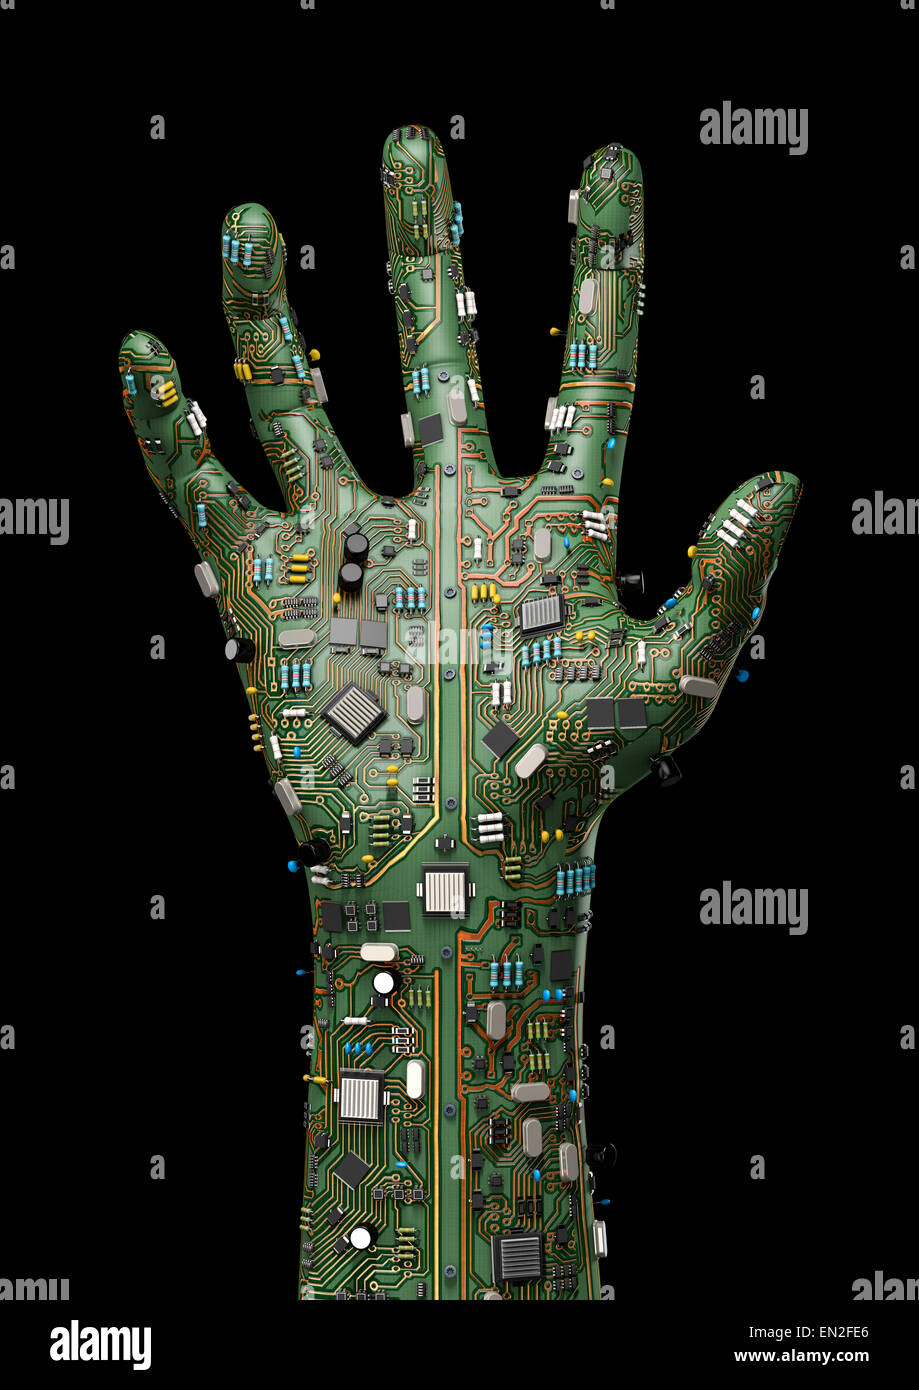 Unity 3d Wallpaper 3d Render Of Raised Hand Made Of Computer Circuit Board